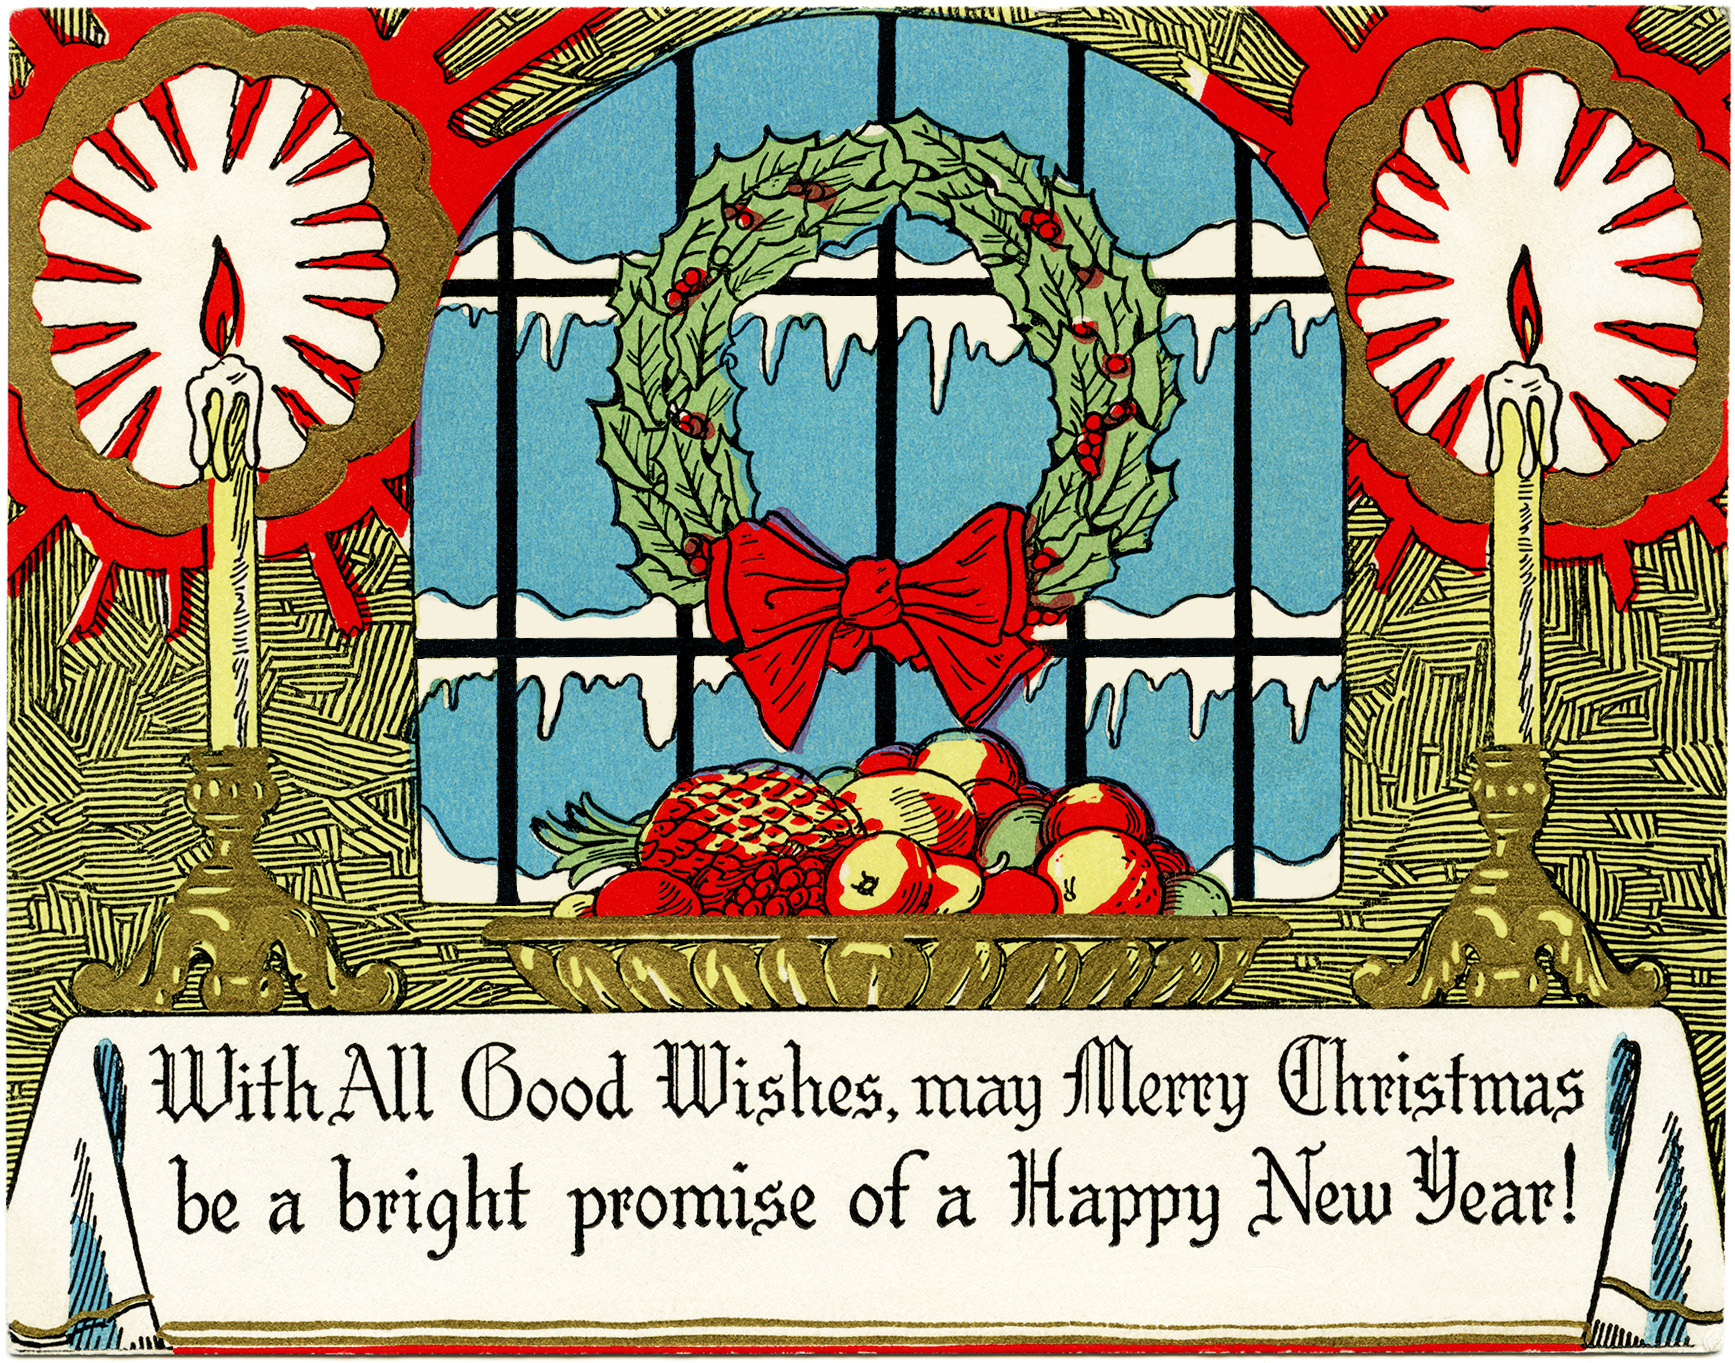 Wreath from old christmas cards - Wreath Candles Fruit Christmas Card Free Vintage Image